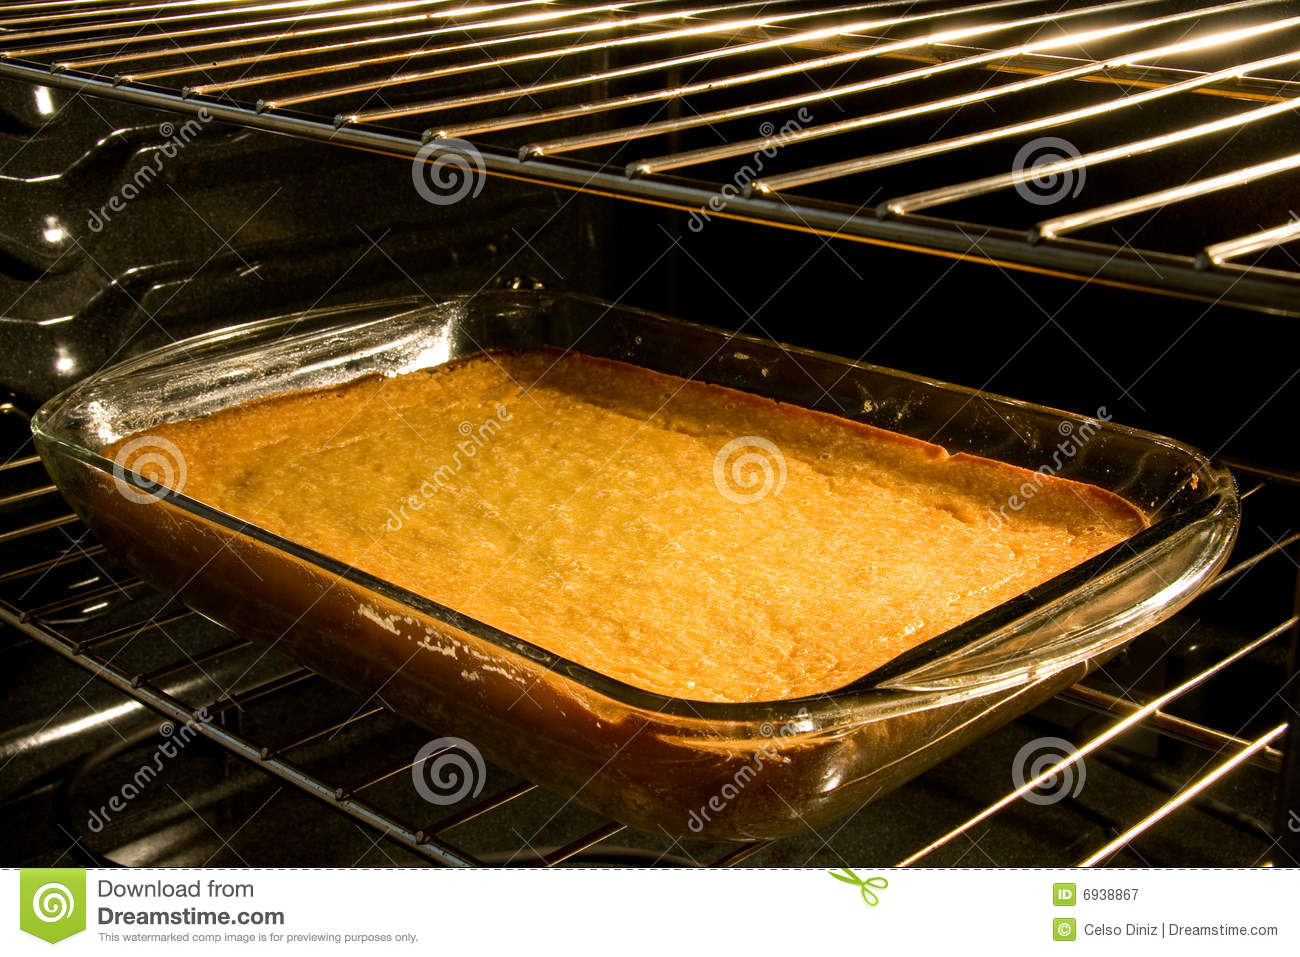 Cake In Oven ~ Corn cake baking in oven royalty free stock photography